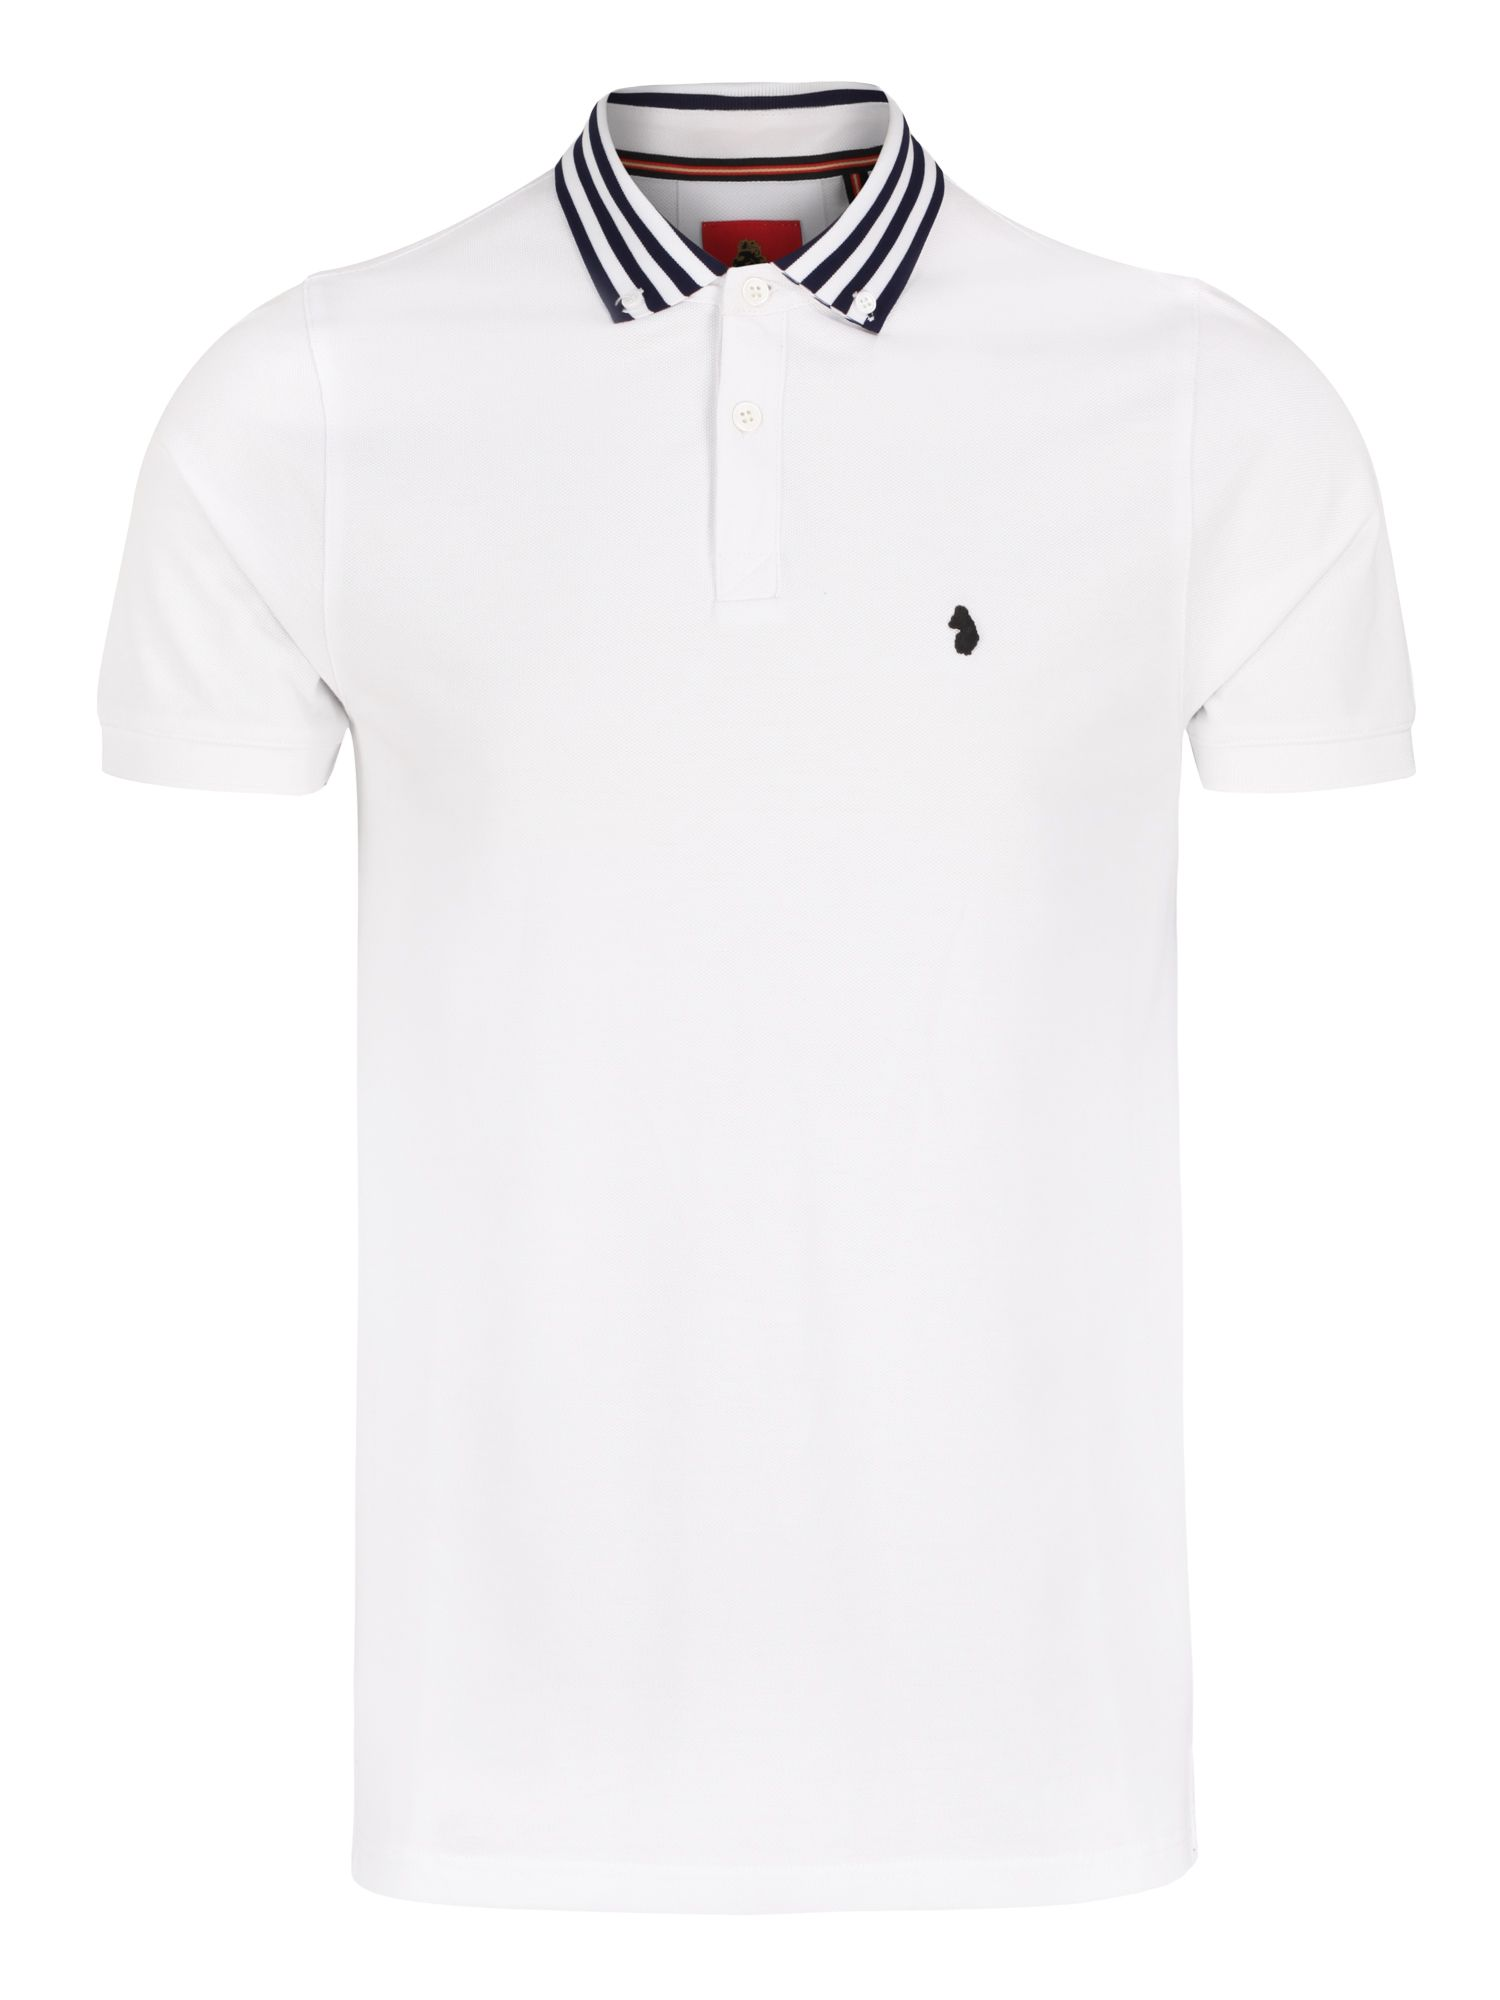 Men's Luke 1977 Turtles head striped collar polo, White